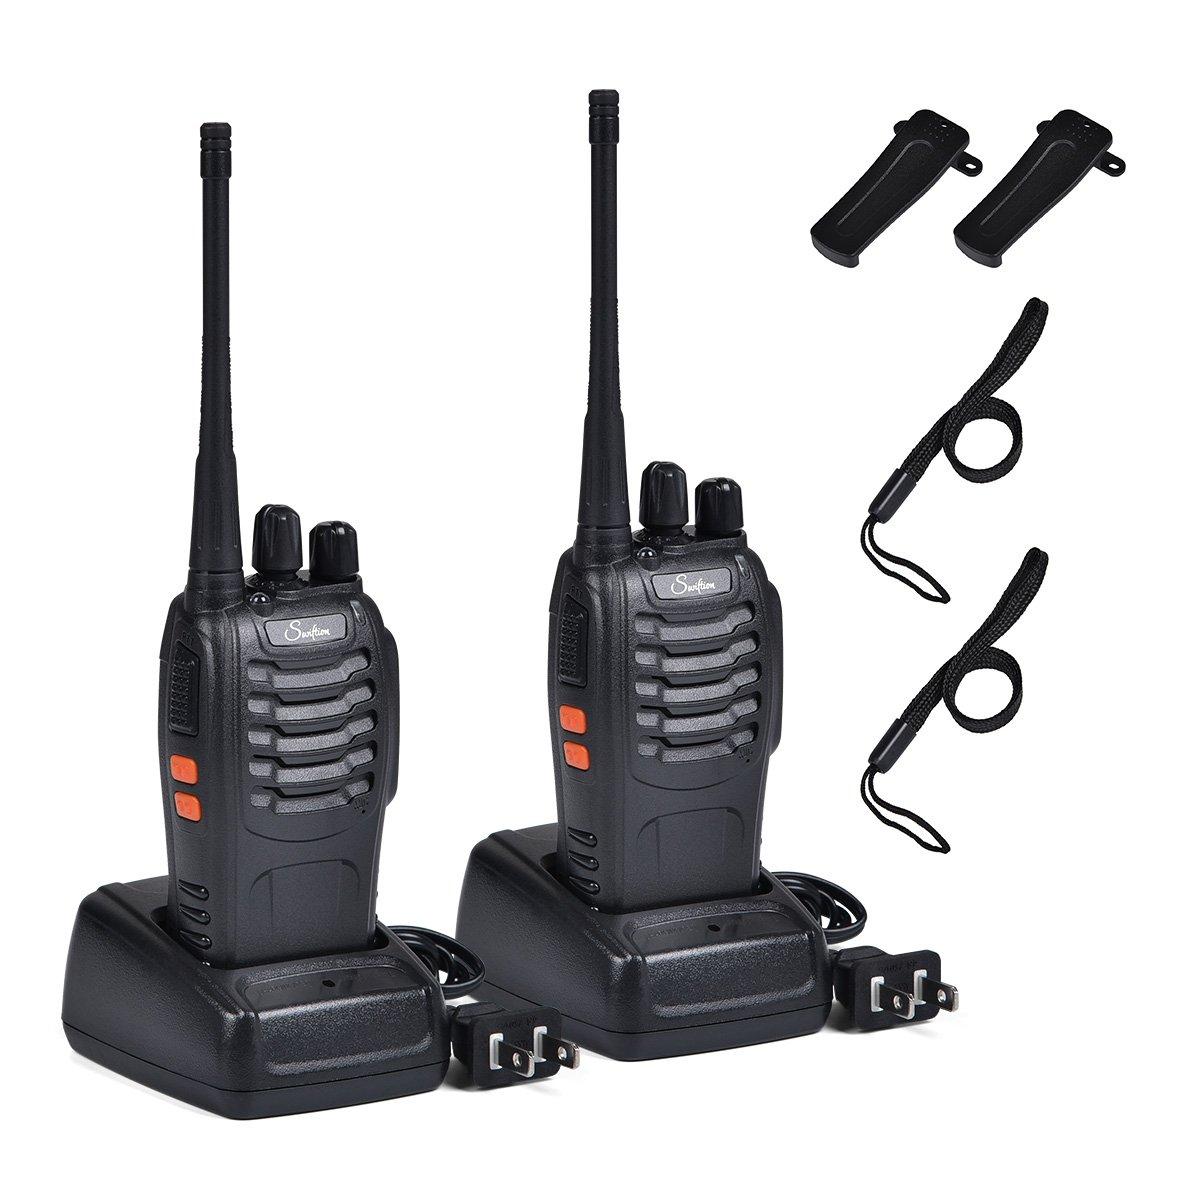 Rechargeable Kids Walkie Talkies Professional Interphone for Hunting for Police BF-888S two way radios Long range Rechargeable with Charger earphone (without Earpiece)